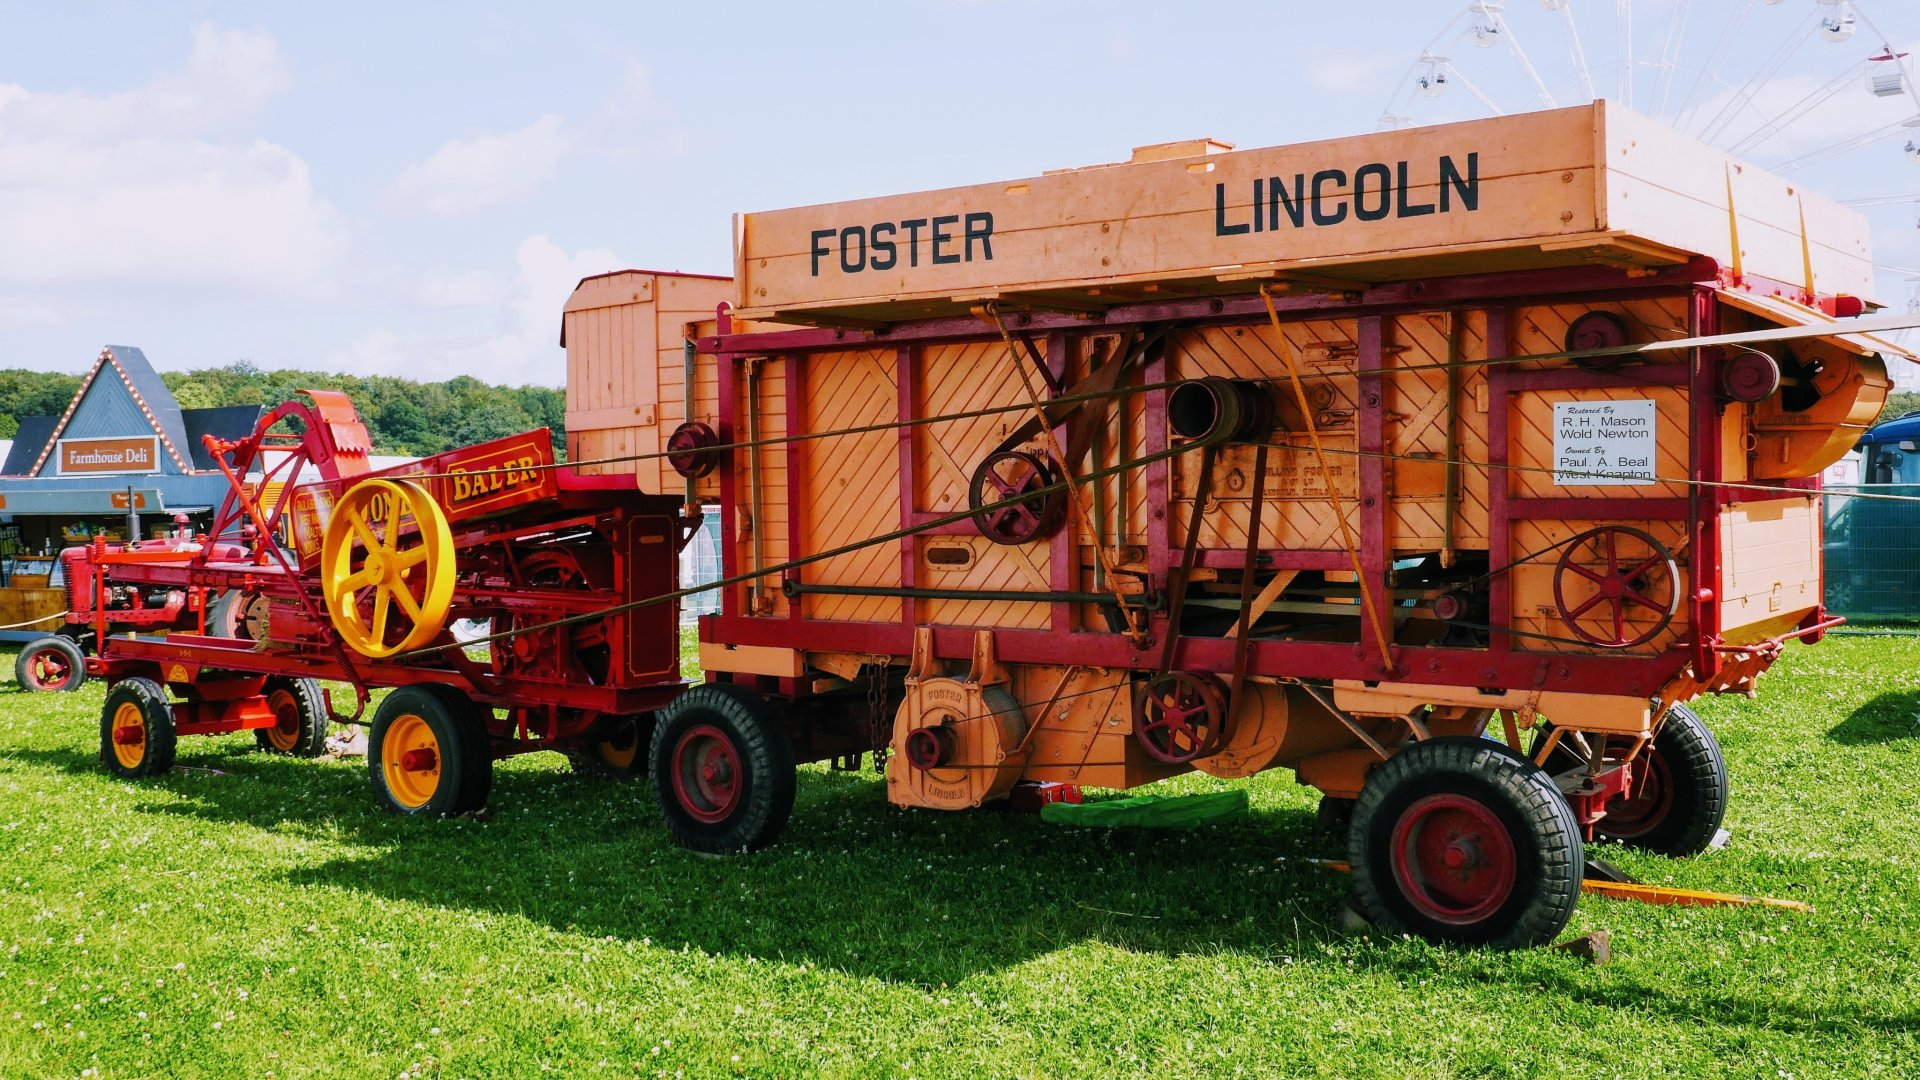 Thresher being driven by a steam engine